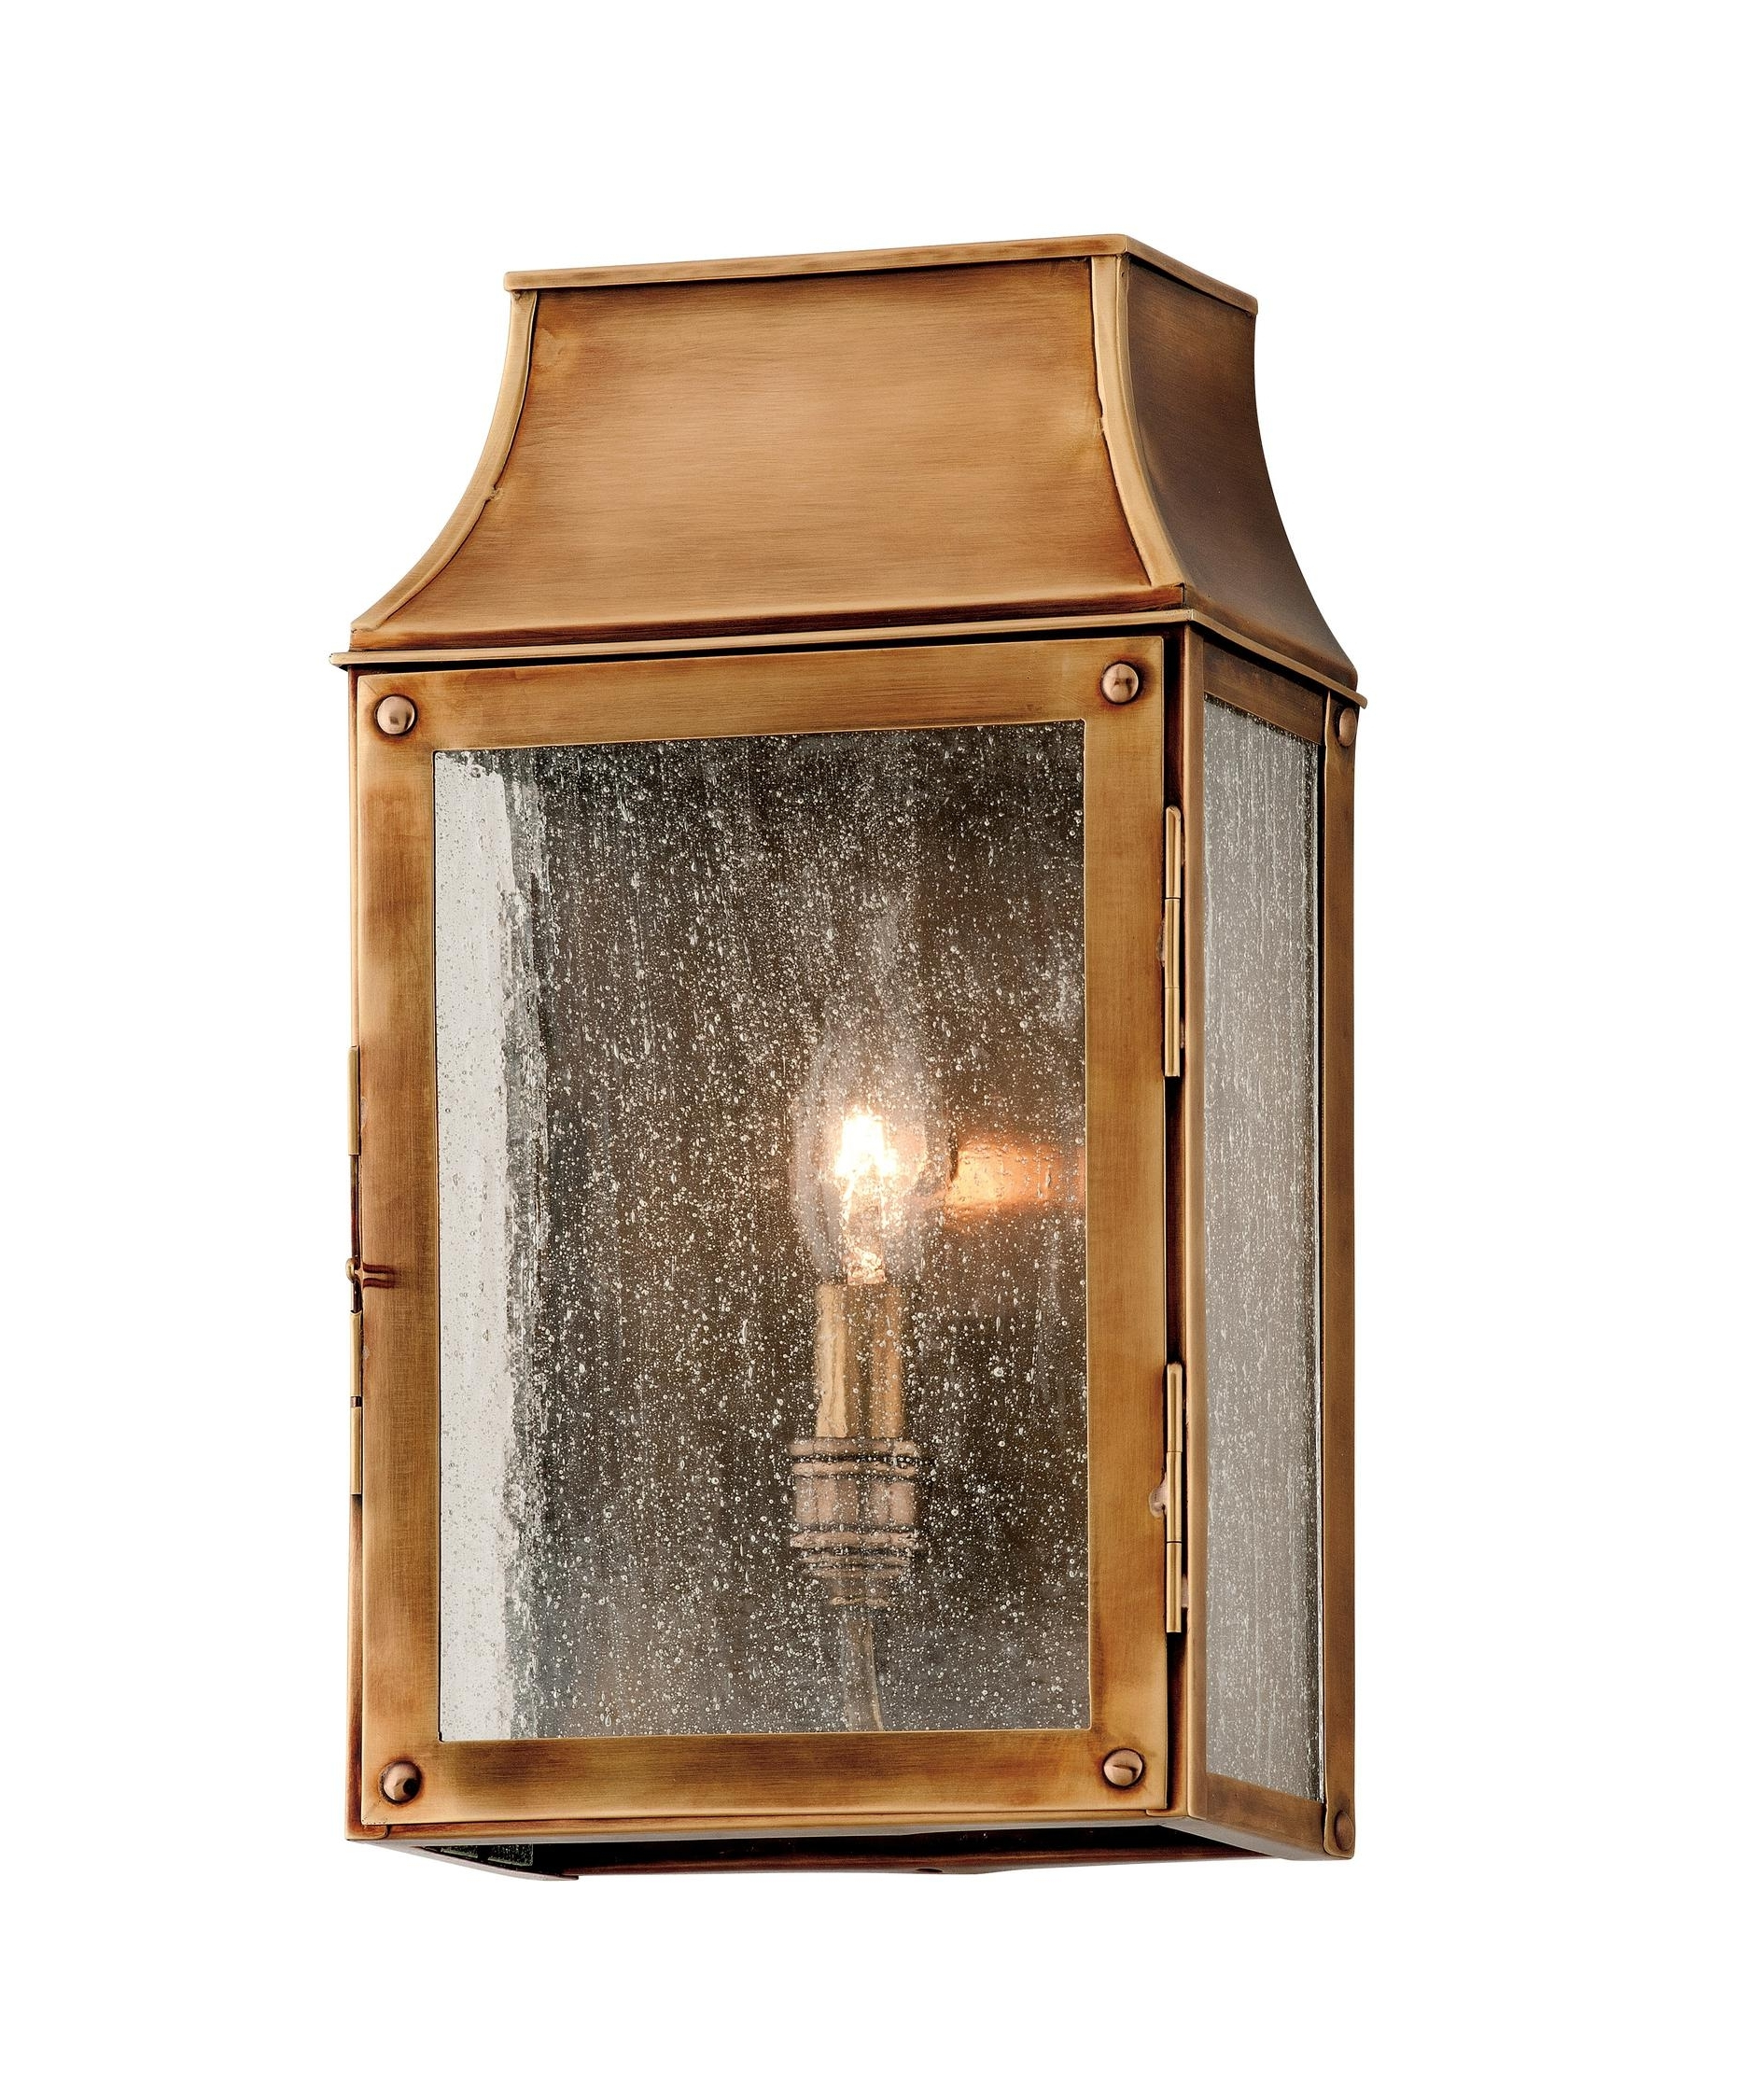 Preferred Troy Lighting B3421 Beacon Hill 7 Inch Wide 1 Light Outdoor Wall For Outdoor Wall Lighting With Seeded Glass (View 19 of 20)